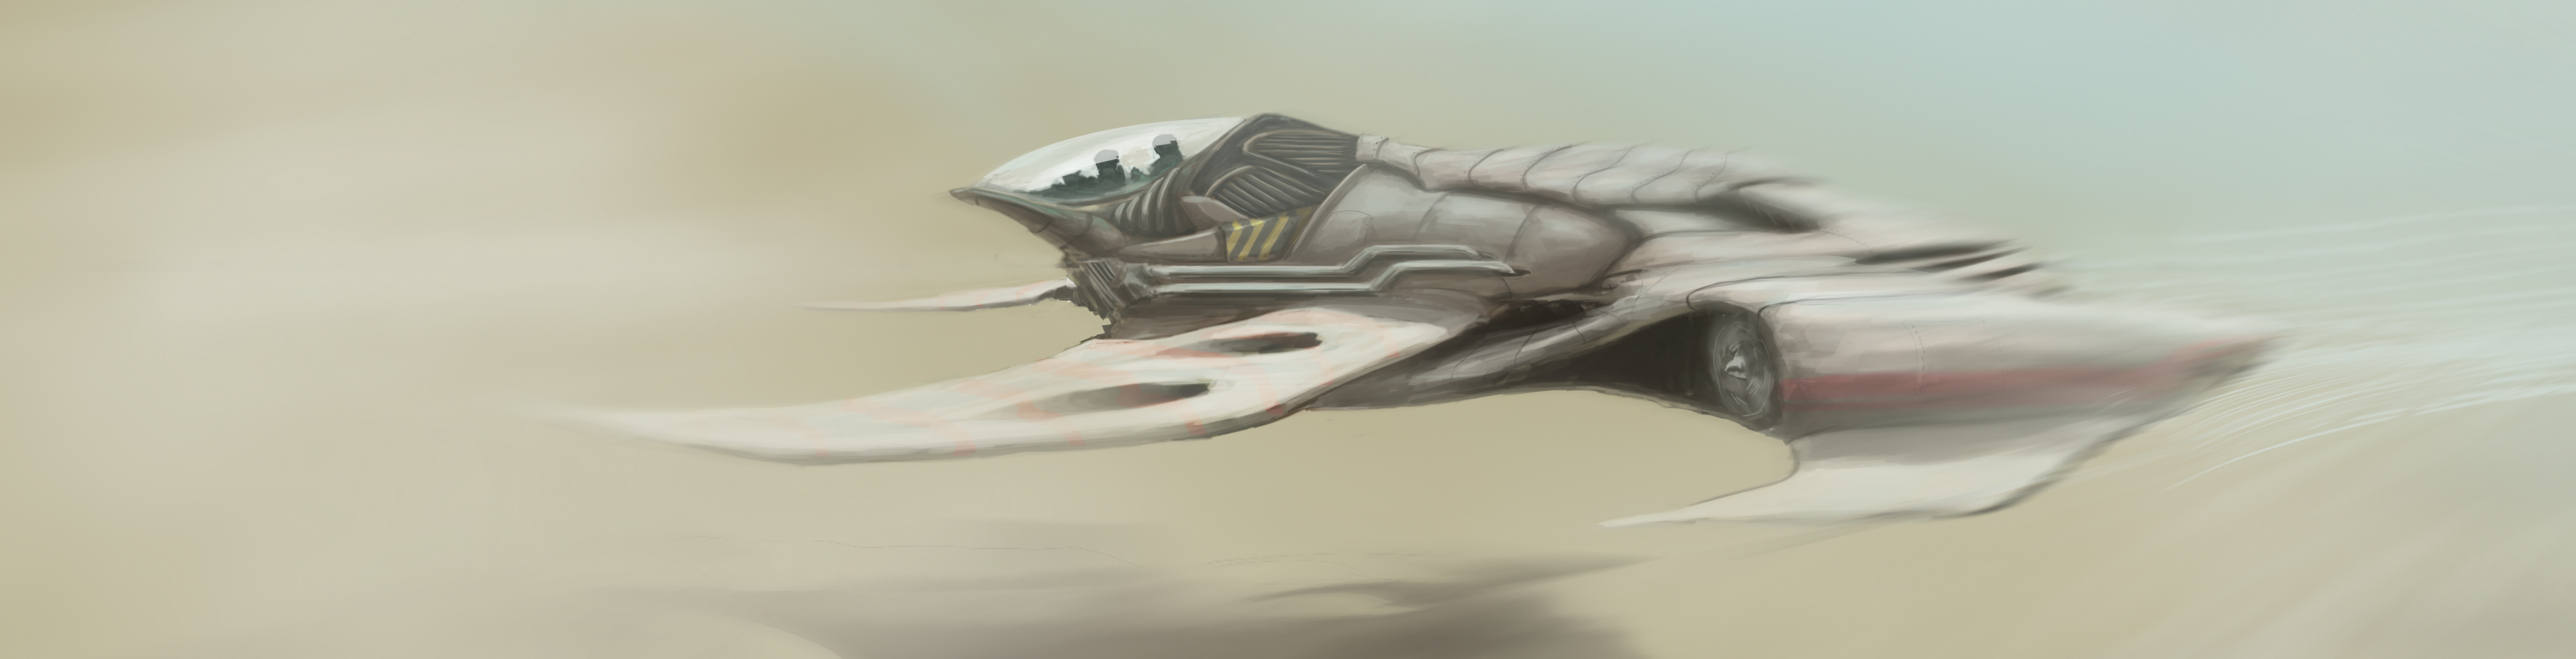 Desert Speeder Design